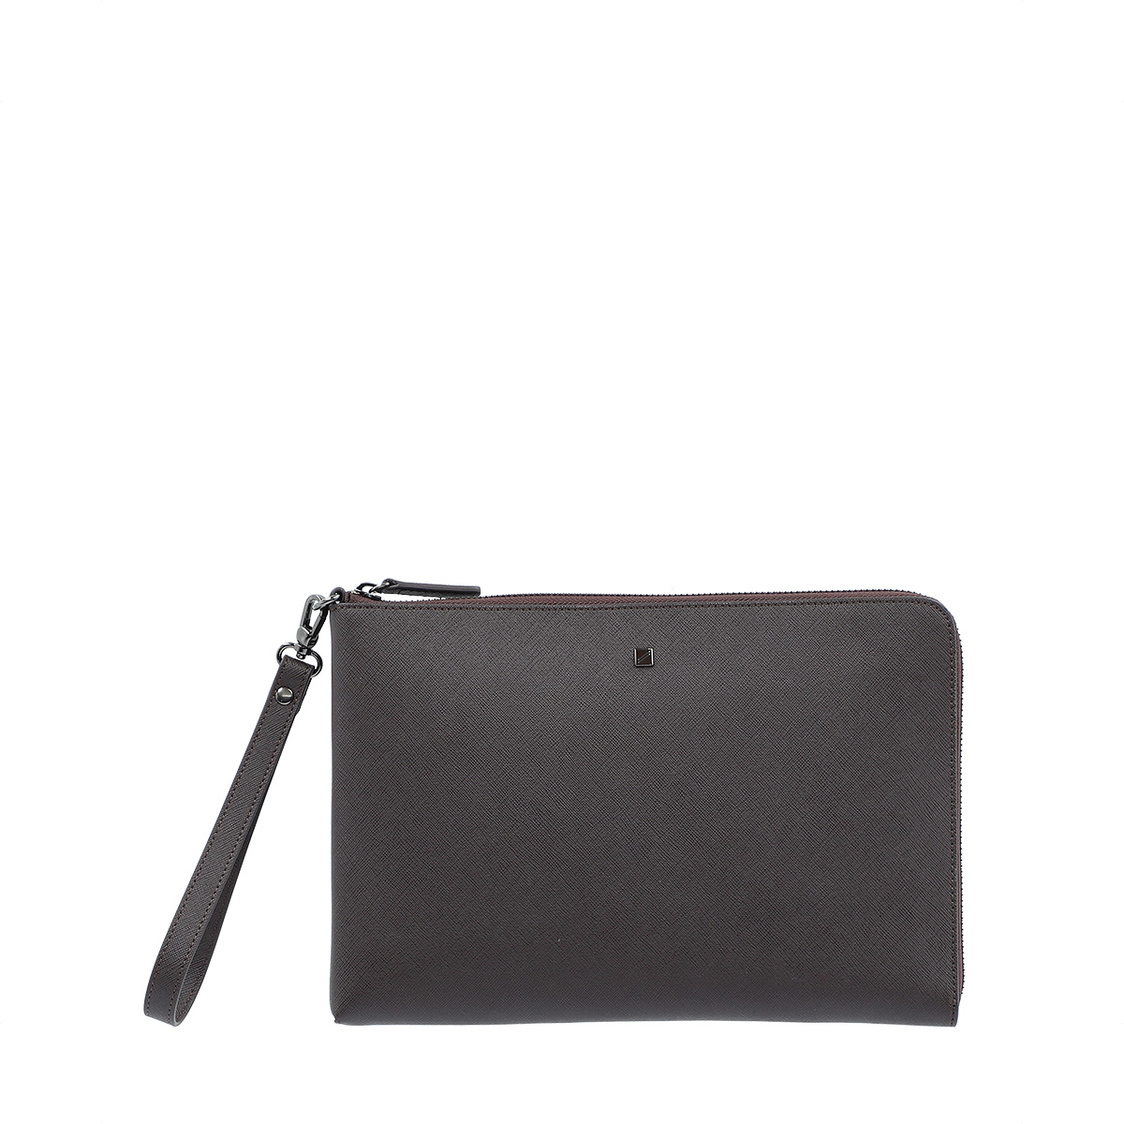 Leather Clutch Bag in Dark Brown